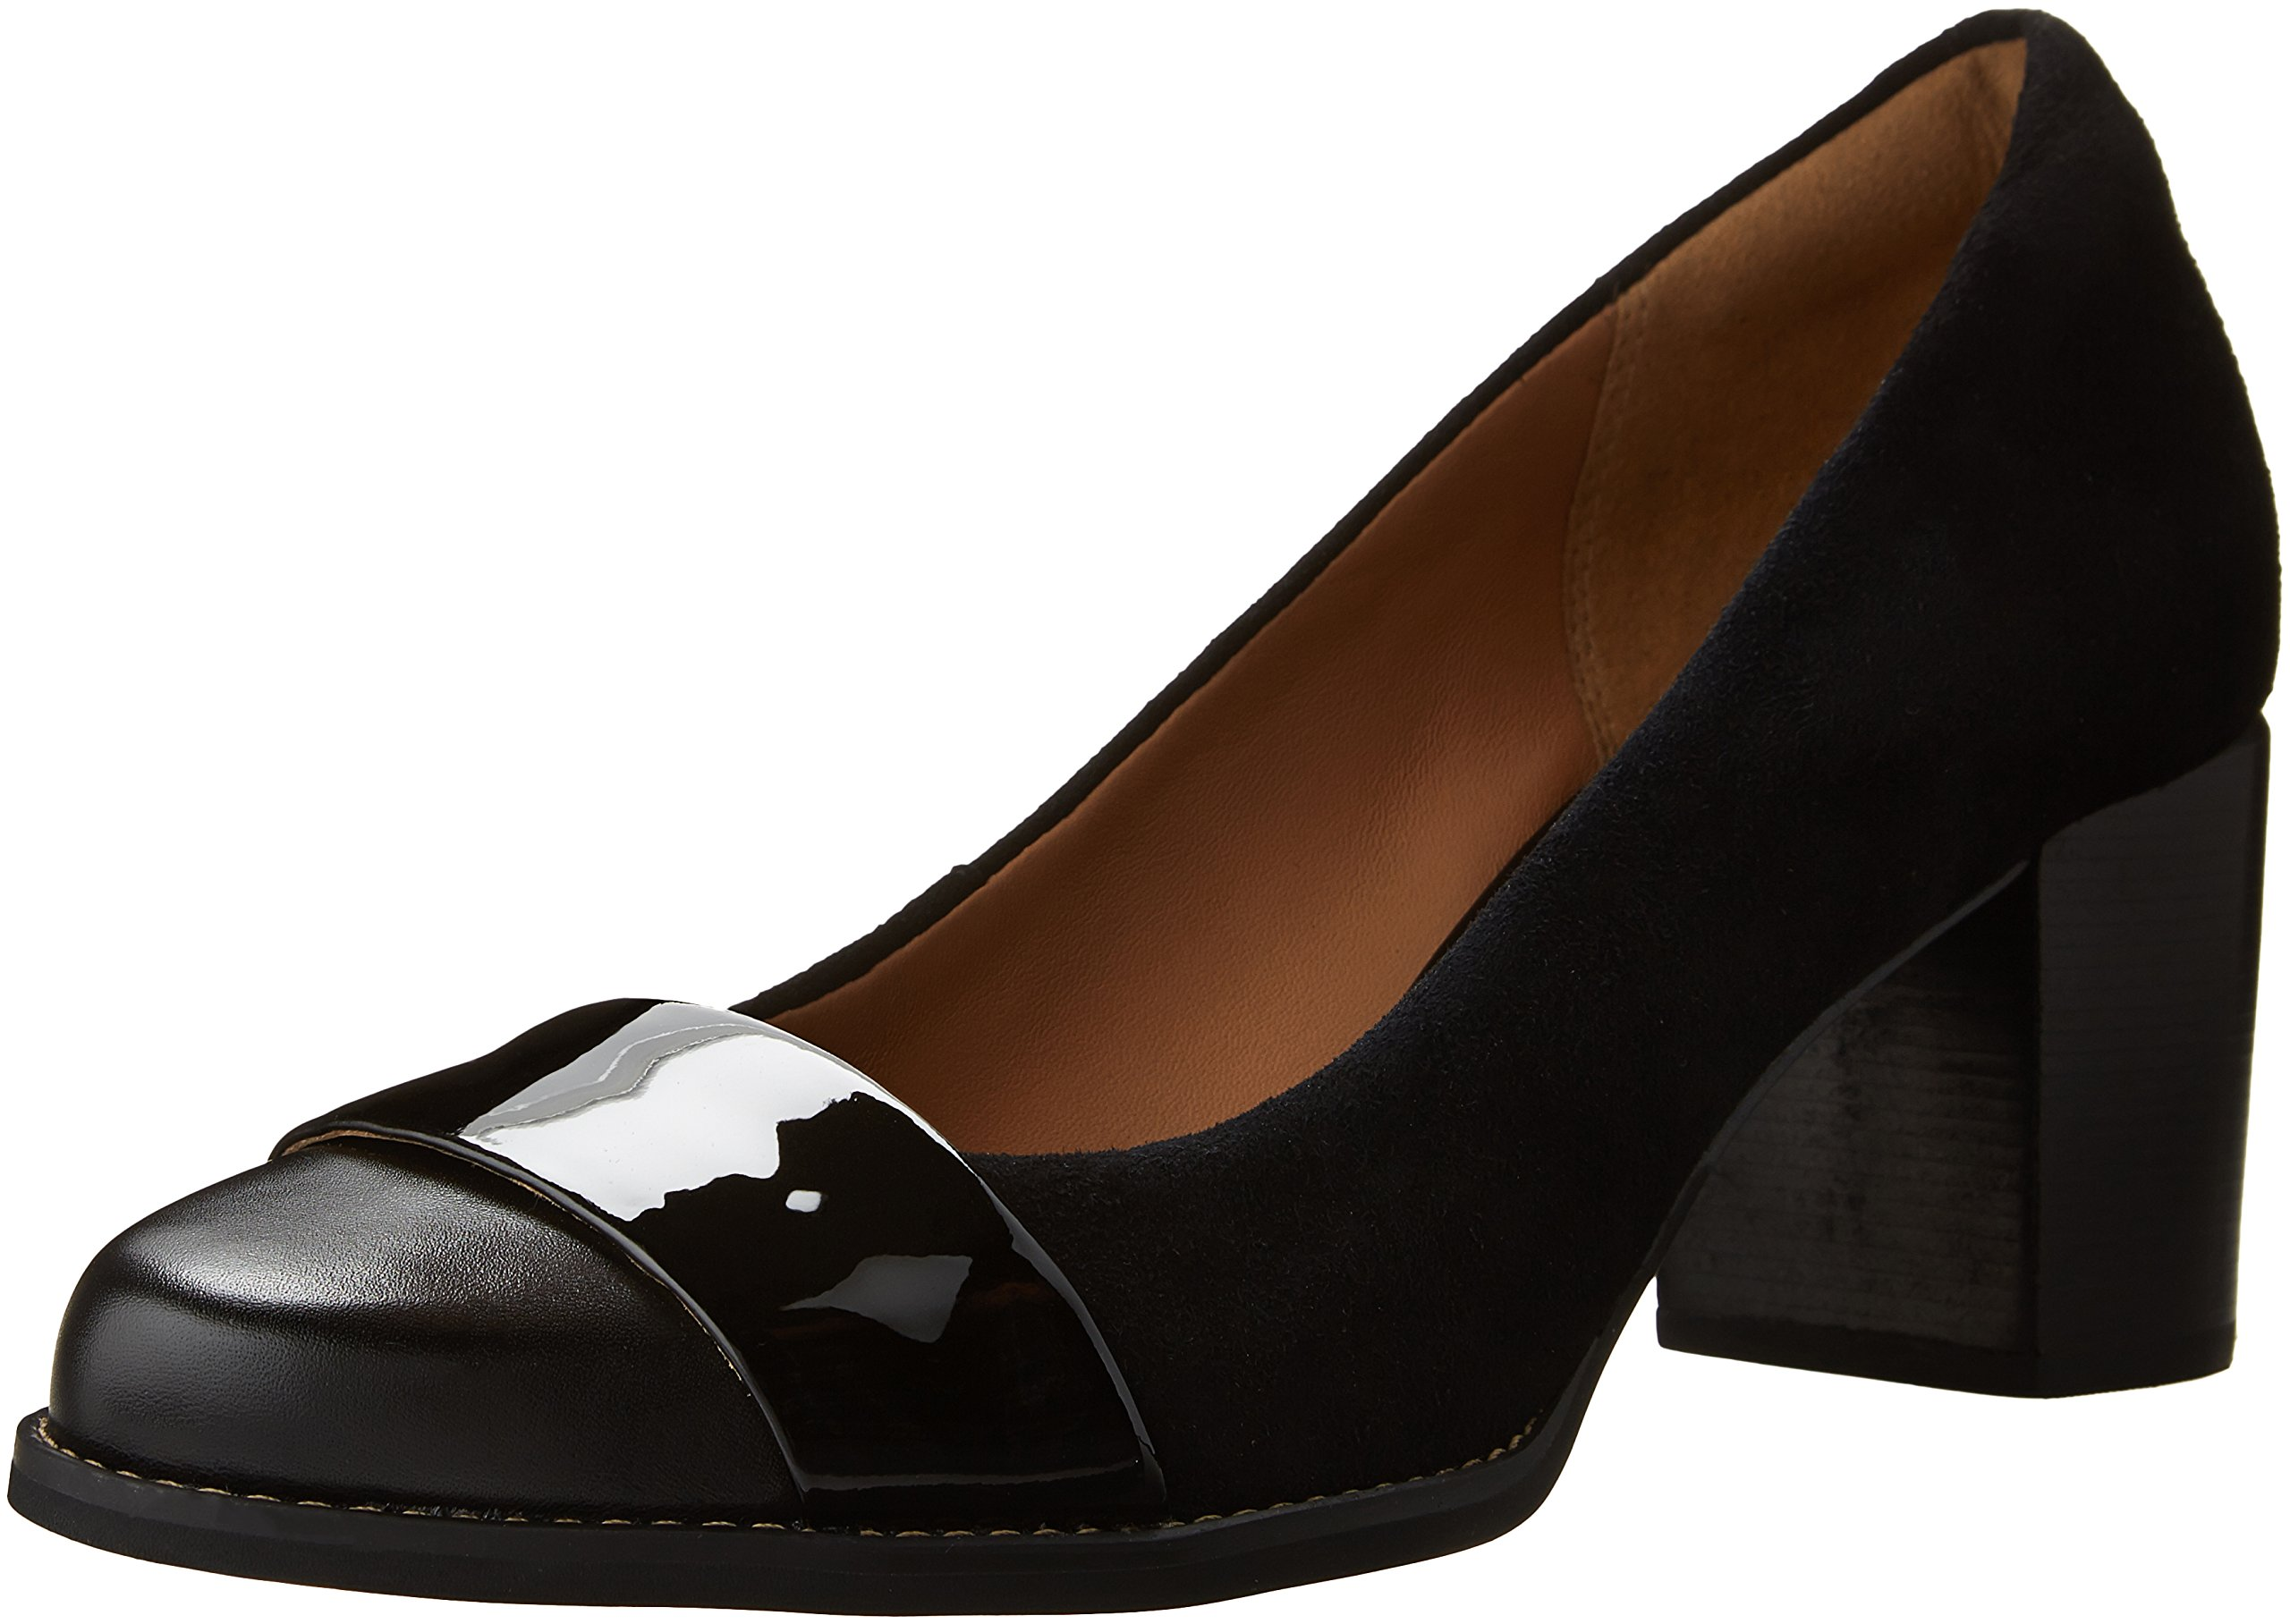 Clarks Women's Tarah Brae Dress Pump, Black Combi, 12 M US